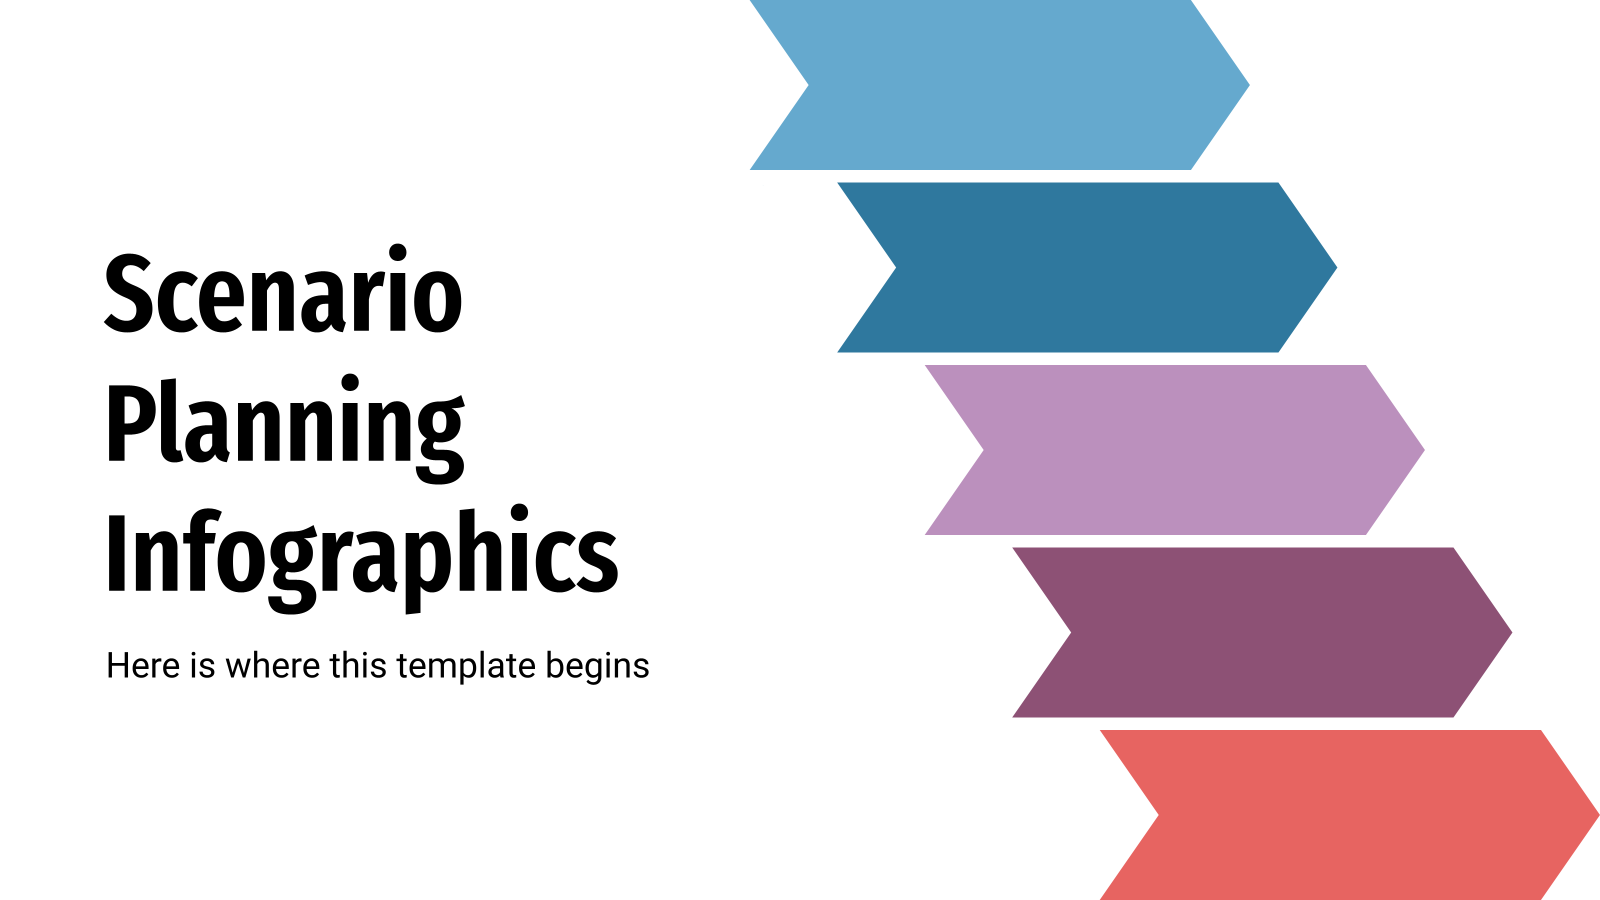 Scenario Planning Infographics presentation template